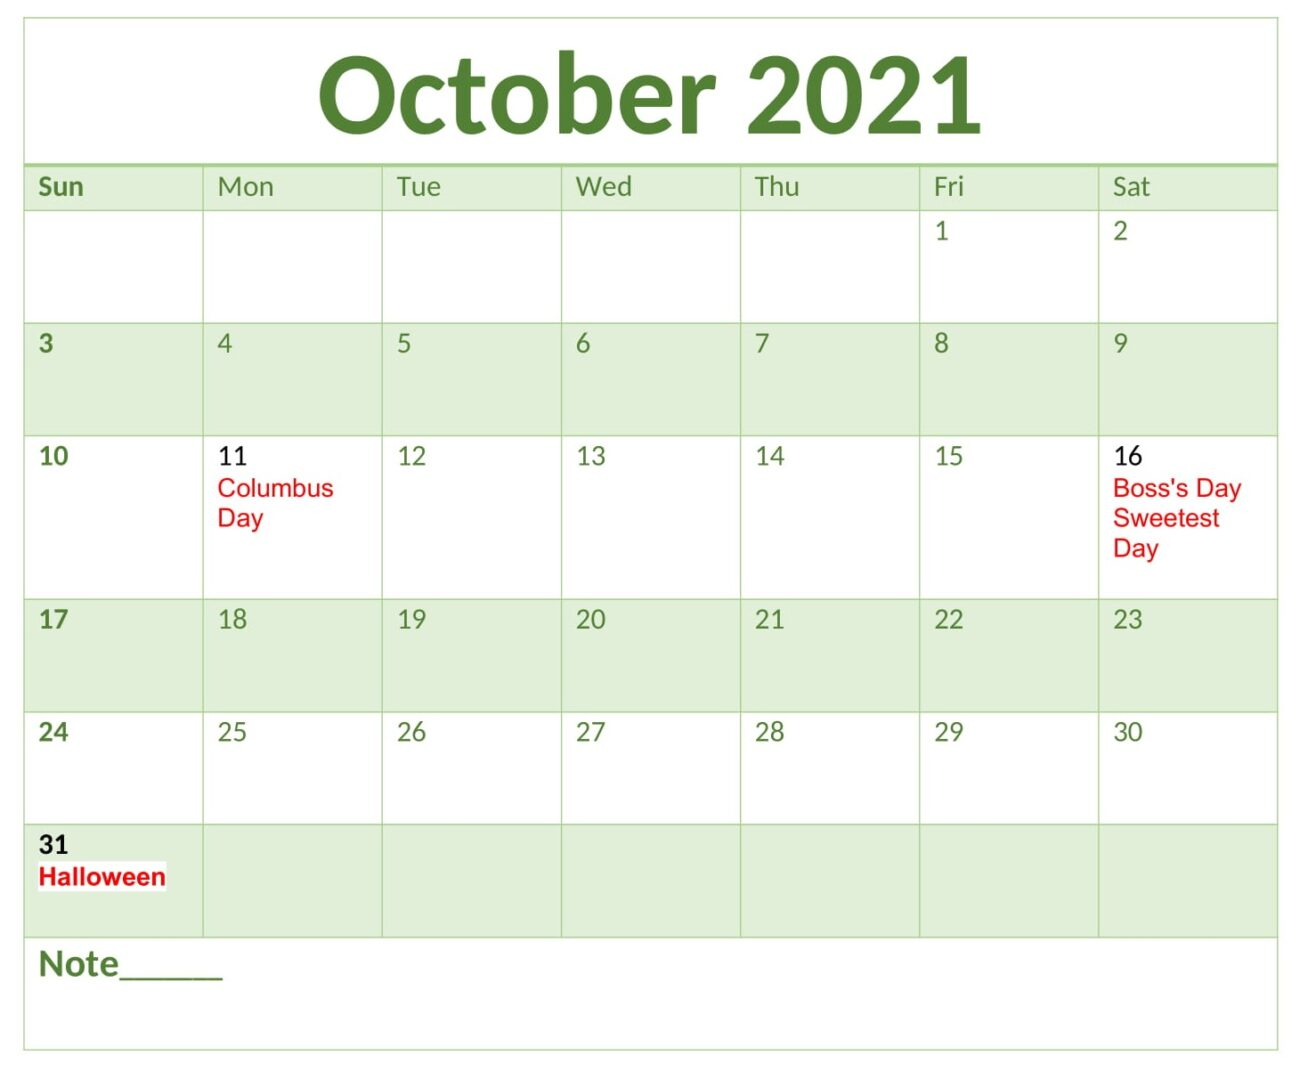 October 2021 Calendar With Holidays Free